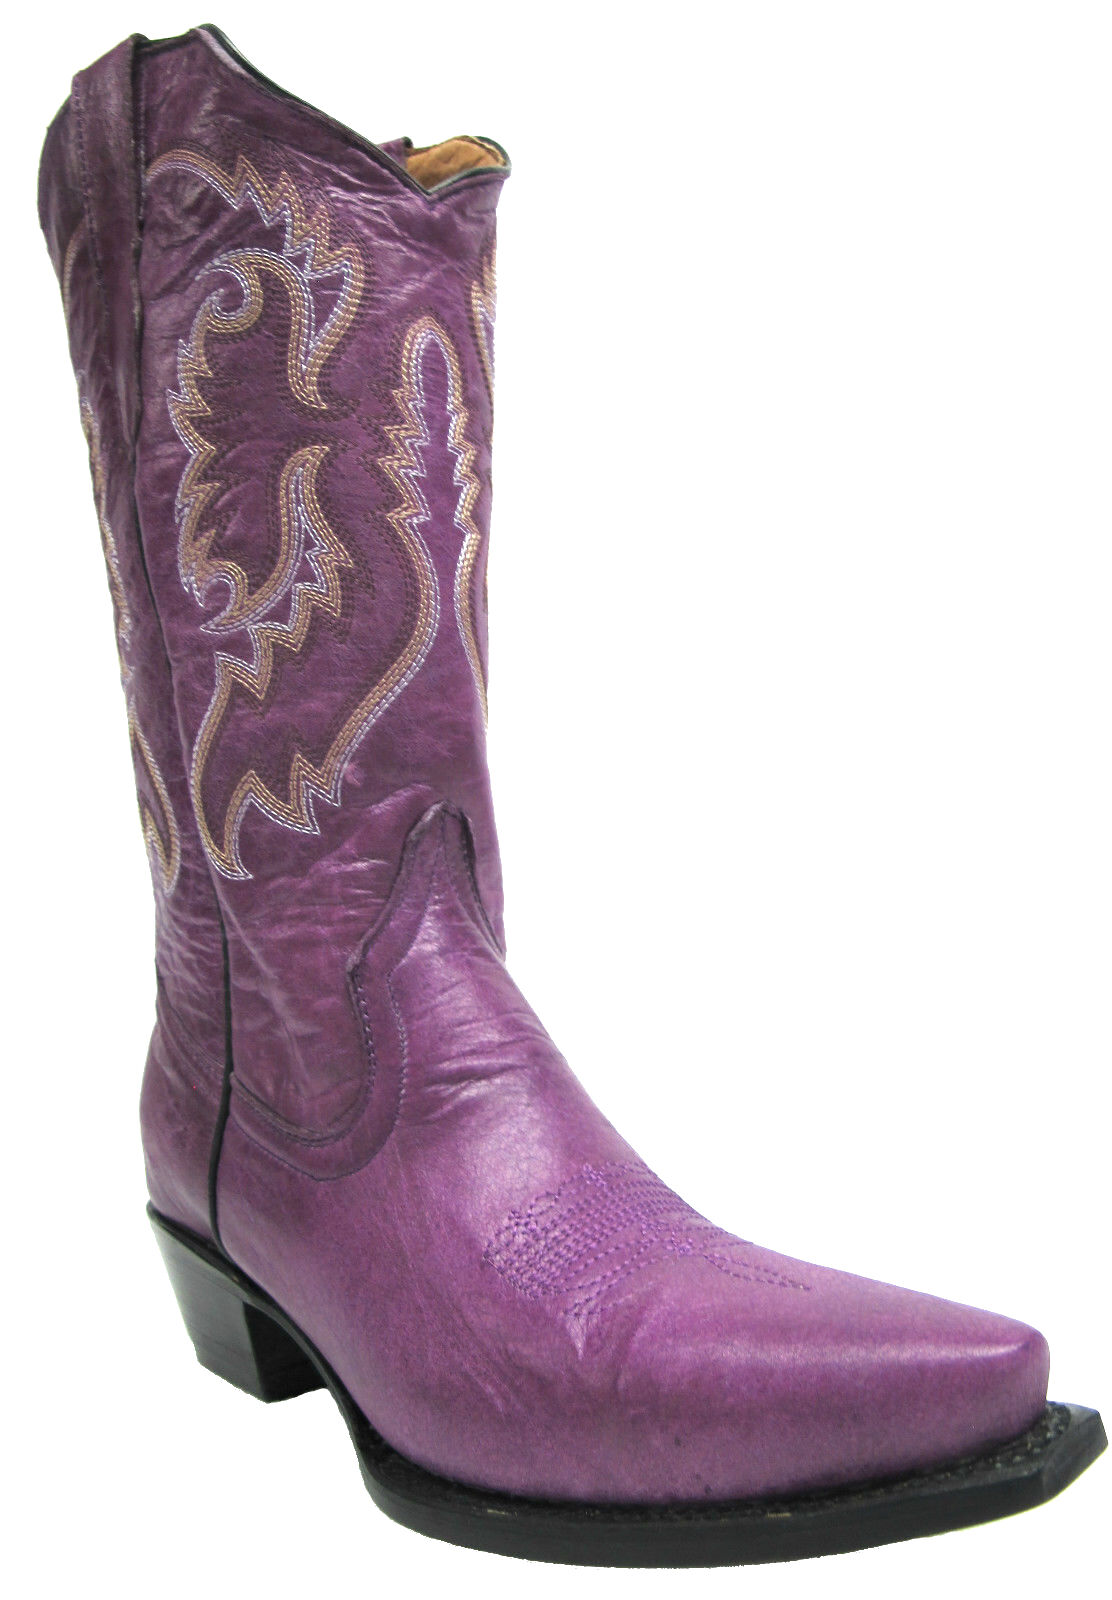 Women's New Distressed Leather Cowgirl Western Riding Boots Snip Toe Purple